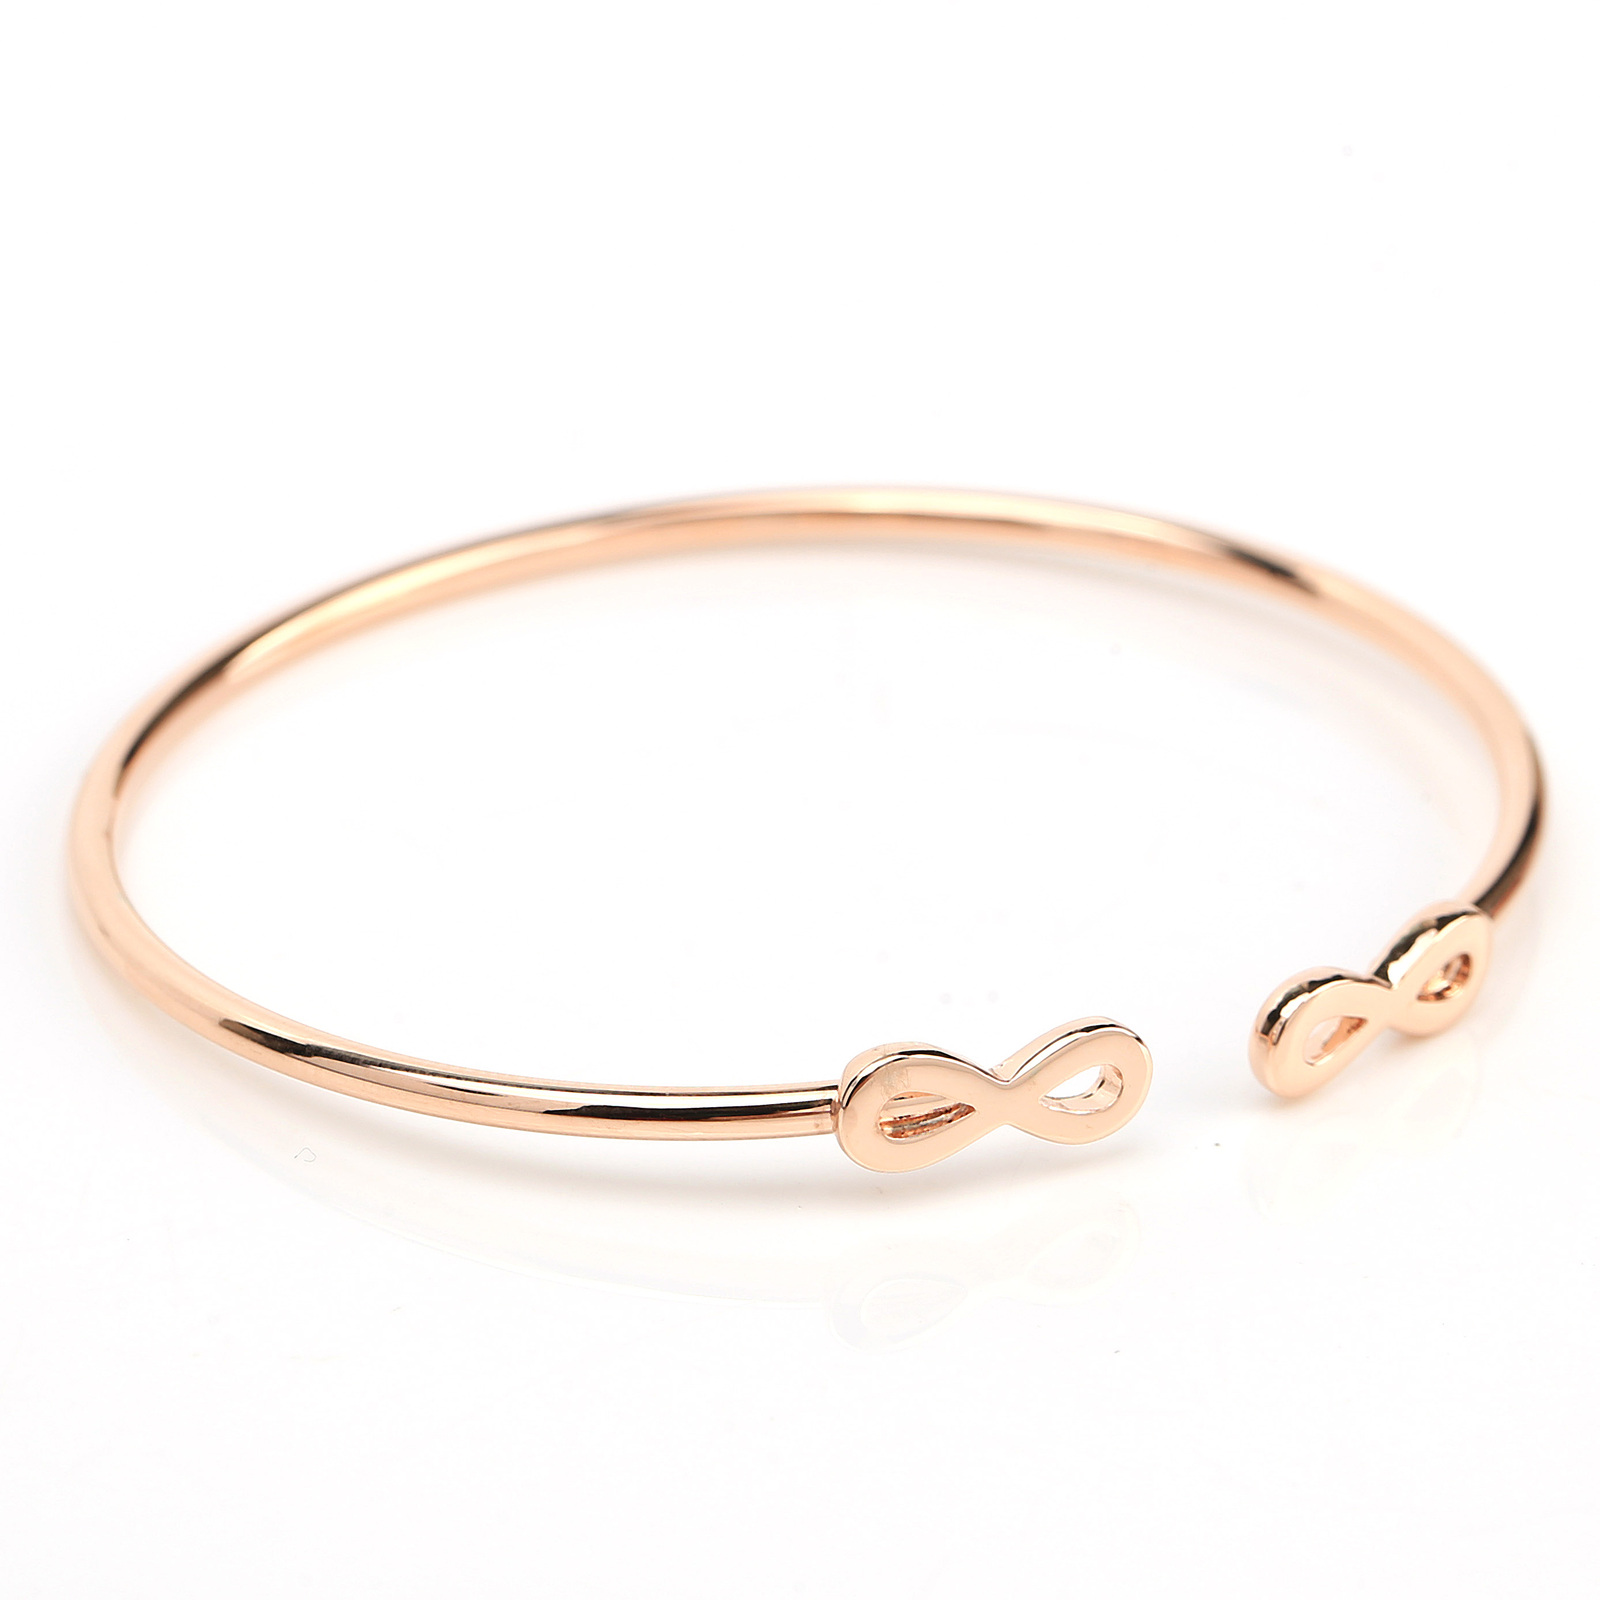 UE- Stylish Rose Tone Designer Bangle Bracelet With Contemporary Infinity Design